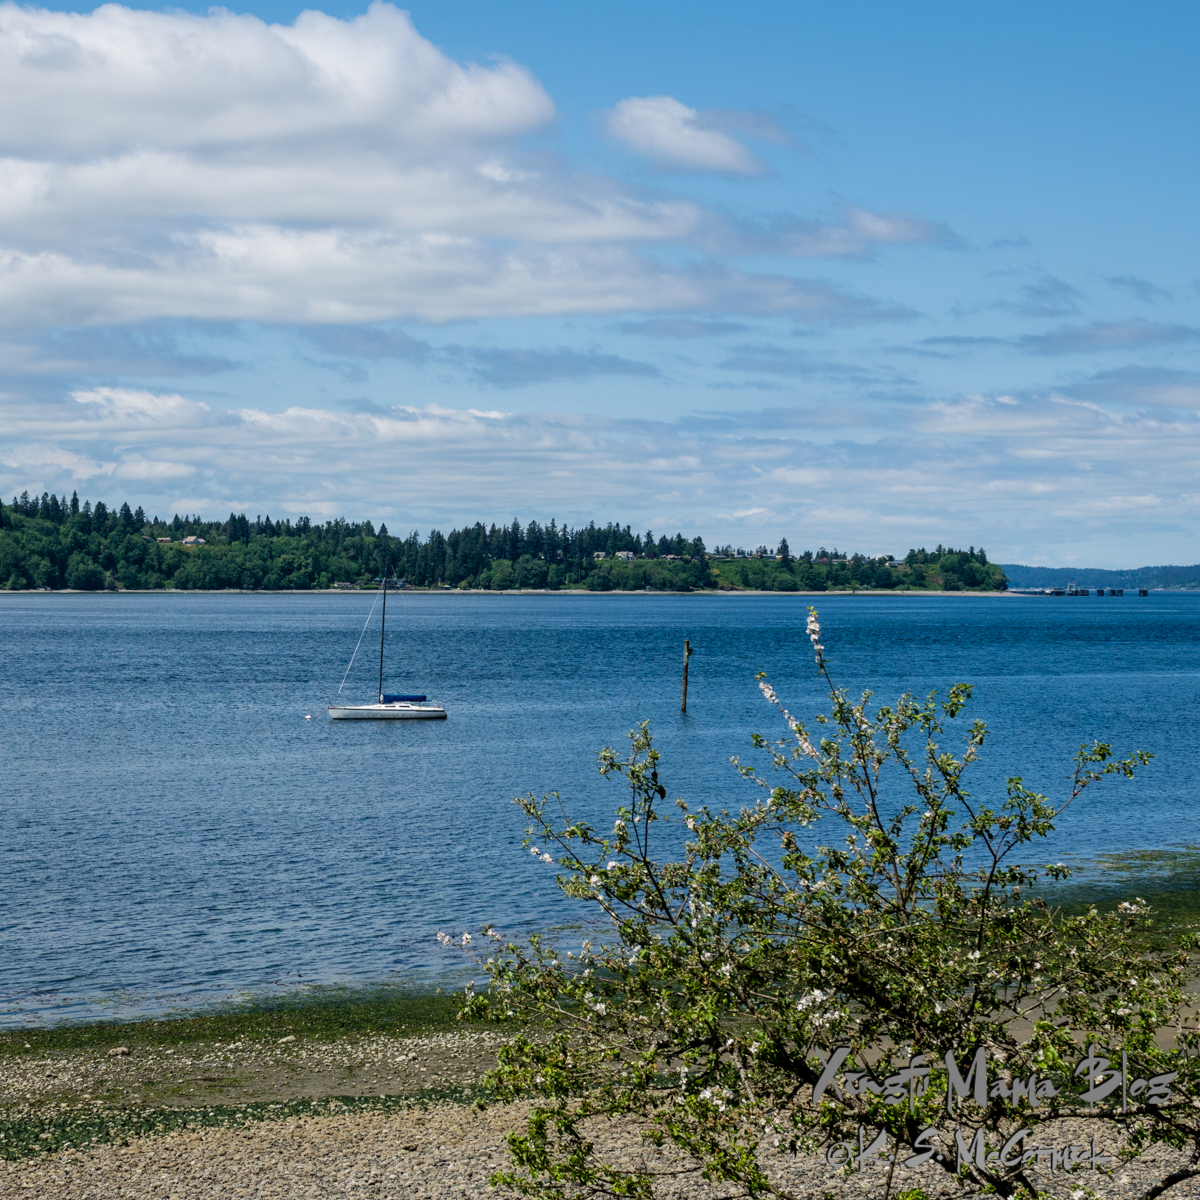 Blue sky...with some white clouds and a blue Puget Sound with a sailboat. View from Vashon Island toward the Southworth Ferry Dock on Kitsap Peninsula.